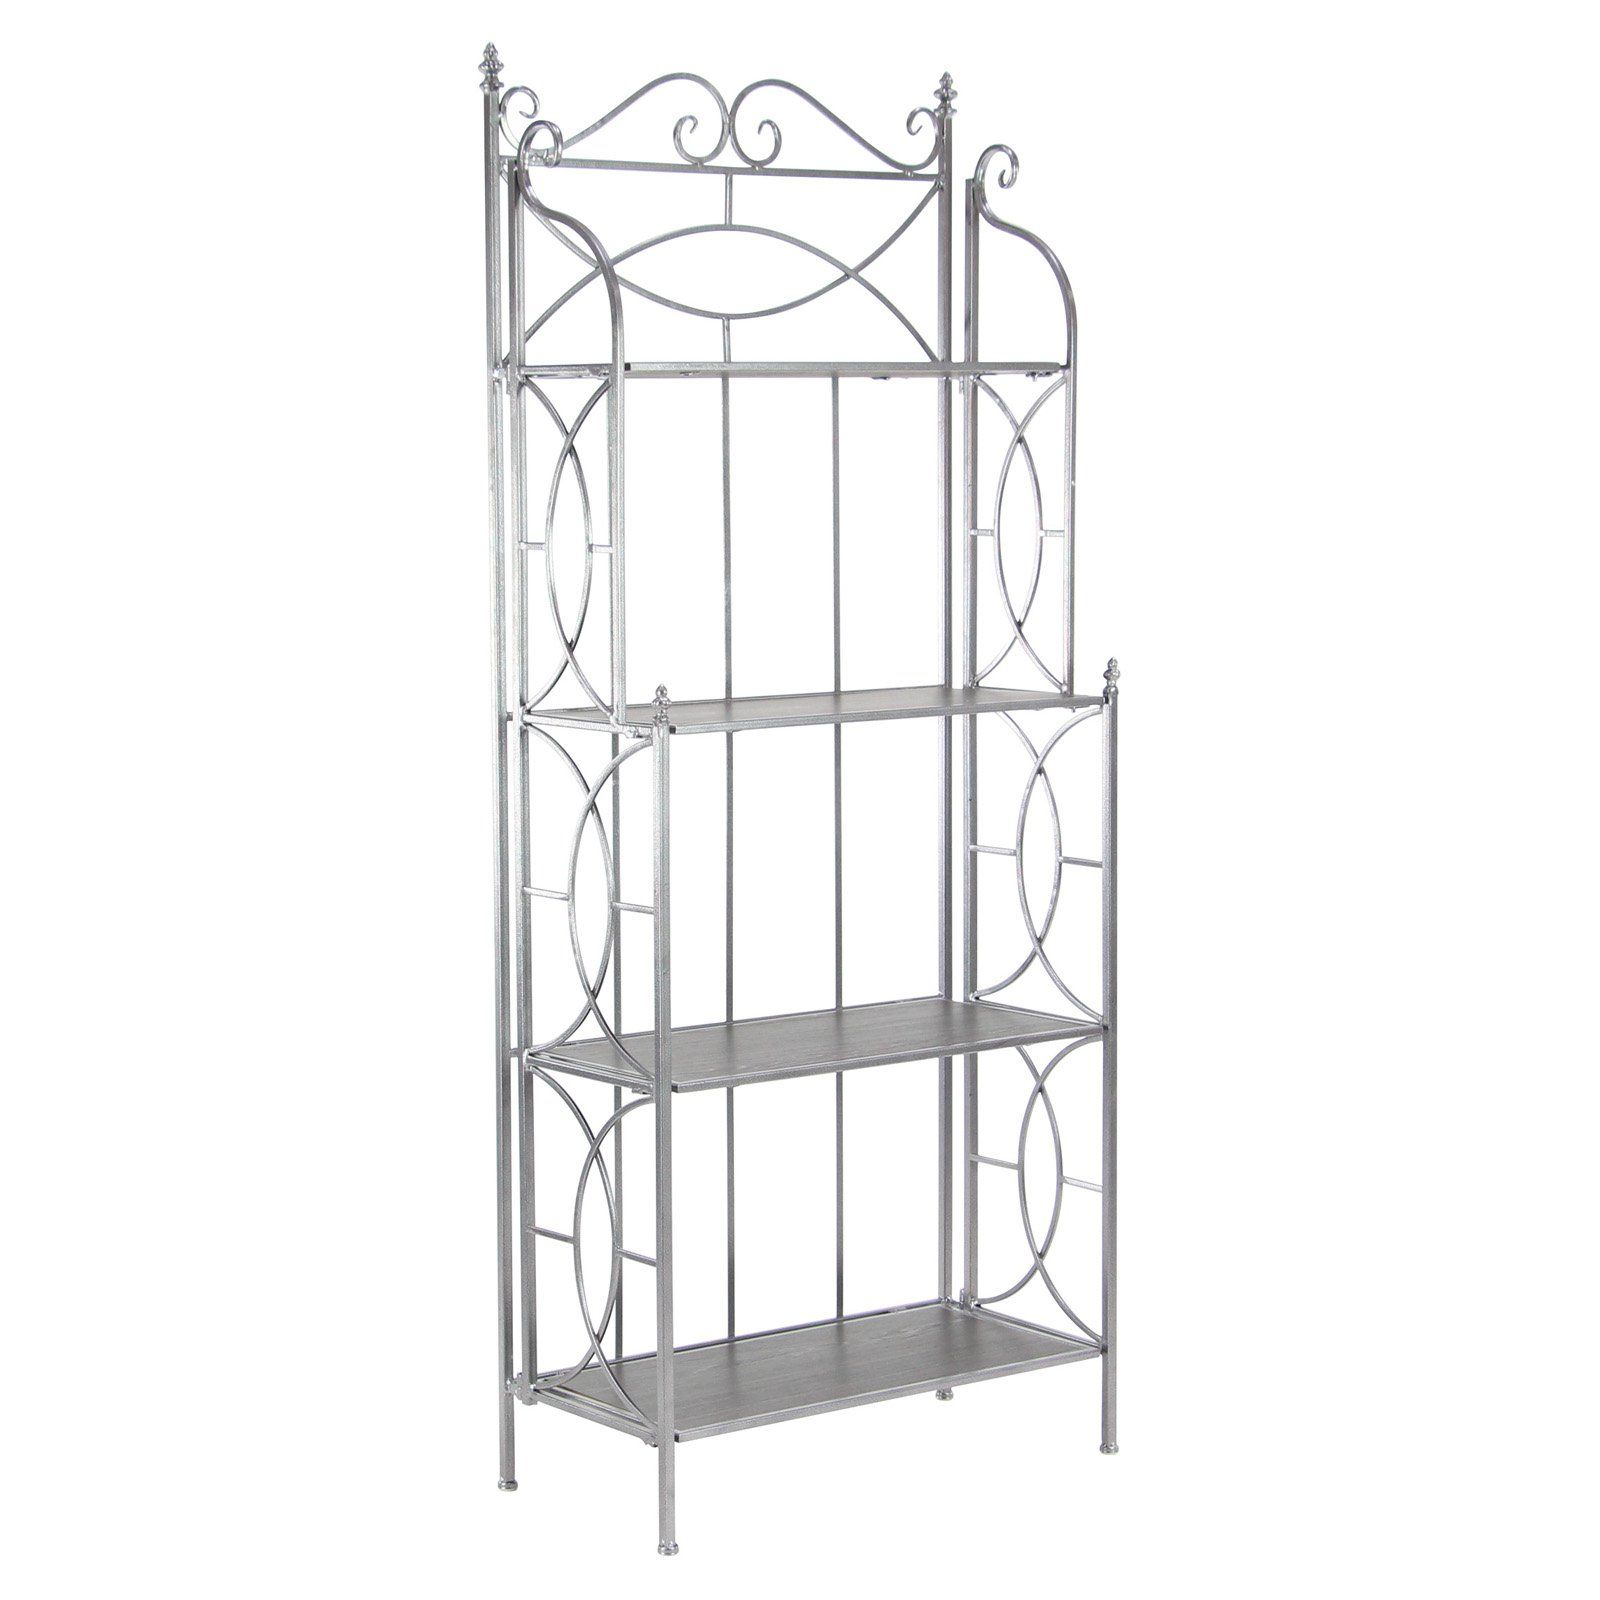 Decmode Metal Freestanding Bakers Rack Metal Shelving Units